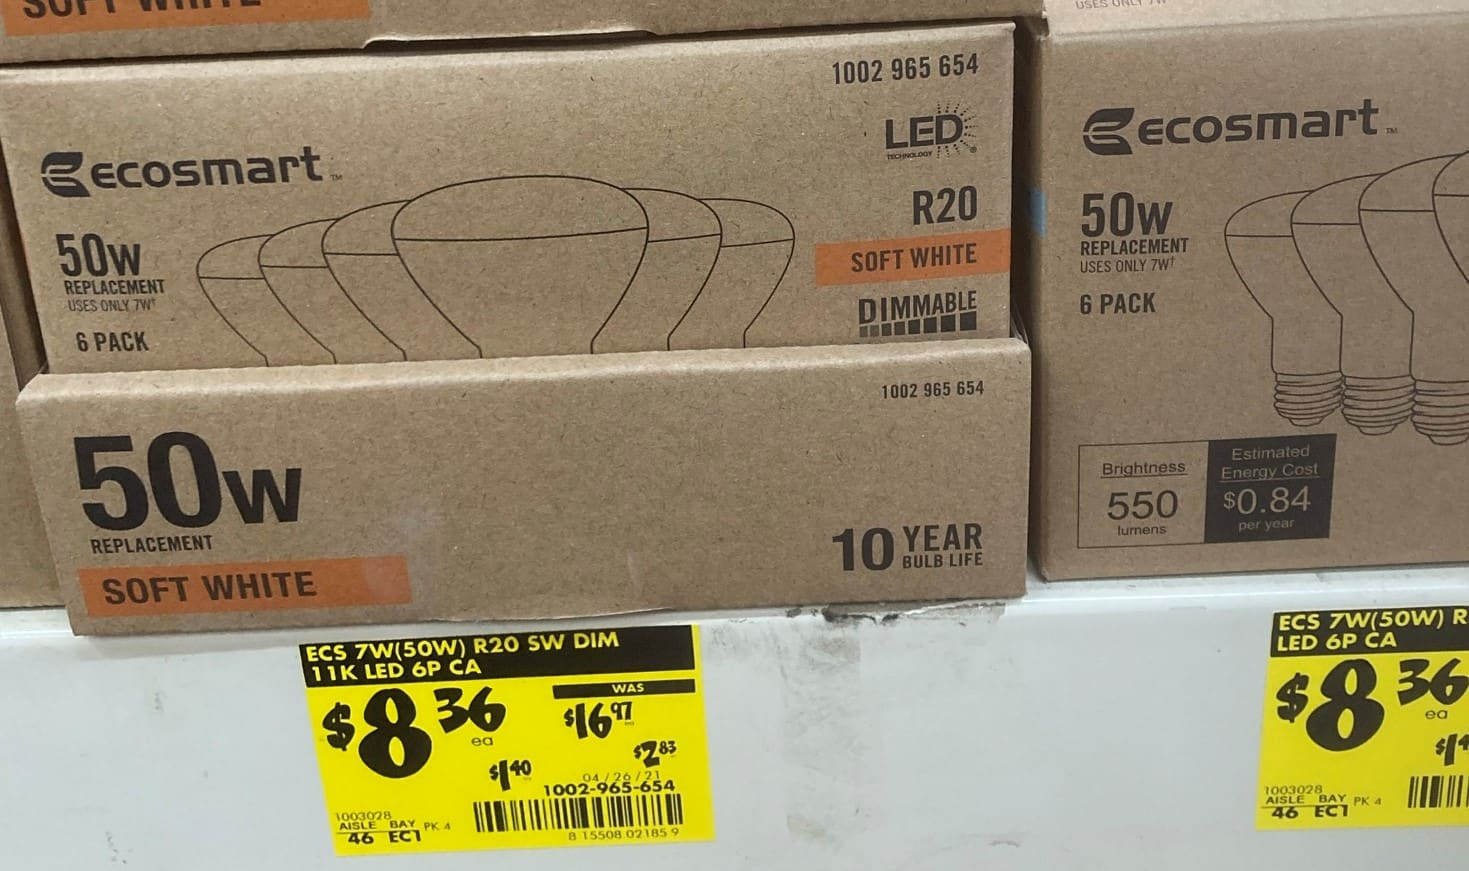 Ecosmart 6 Pack BR20 50-Watt Equivalent Dimmable LED Light Bulbs Clearance In-Store Home Depot YMMV $4.33